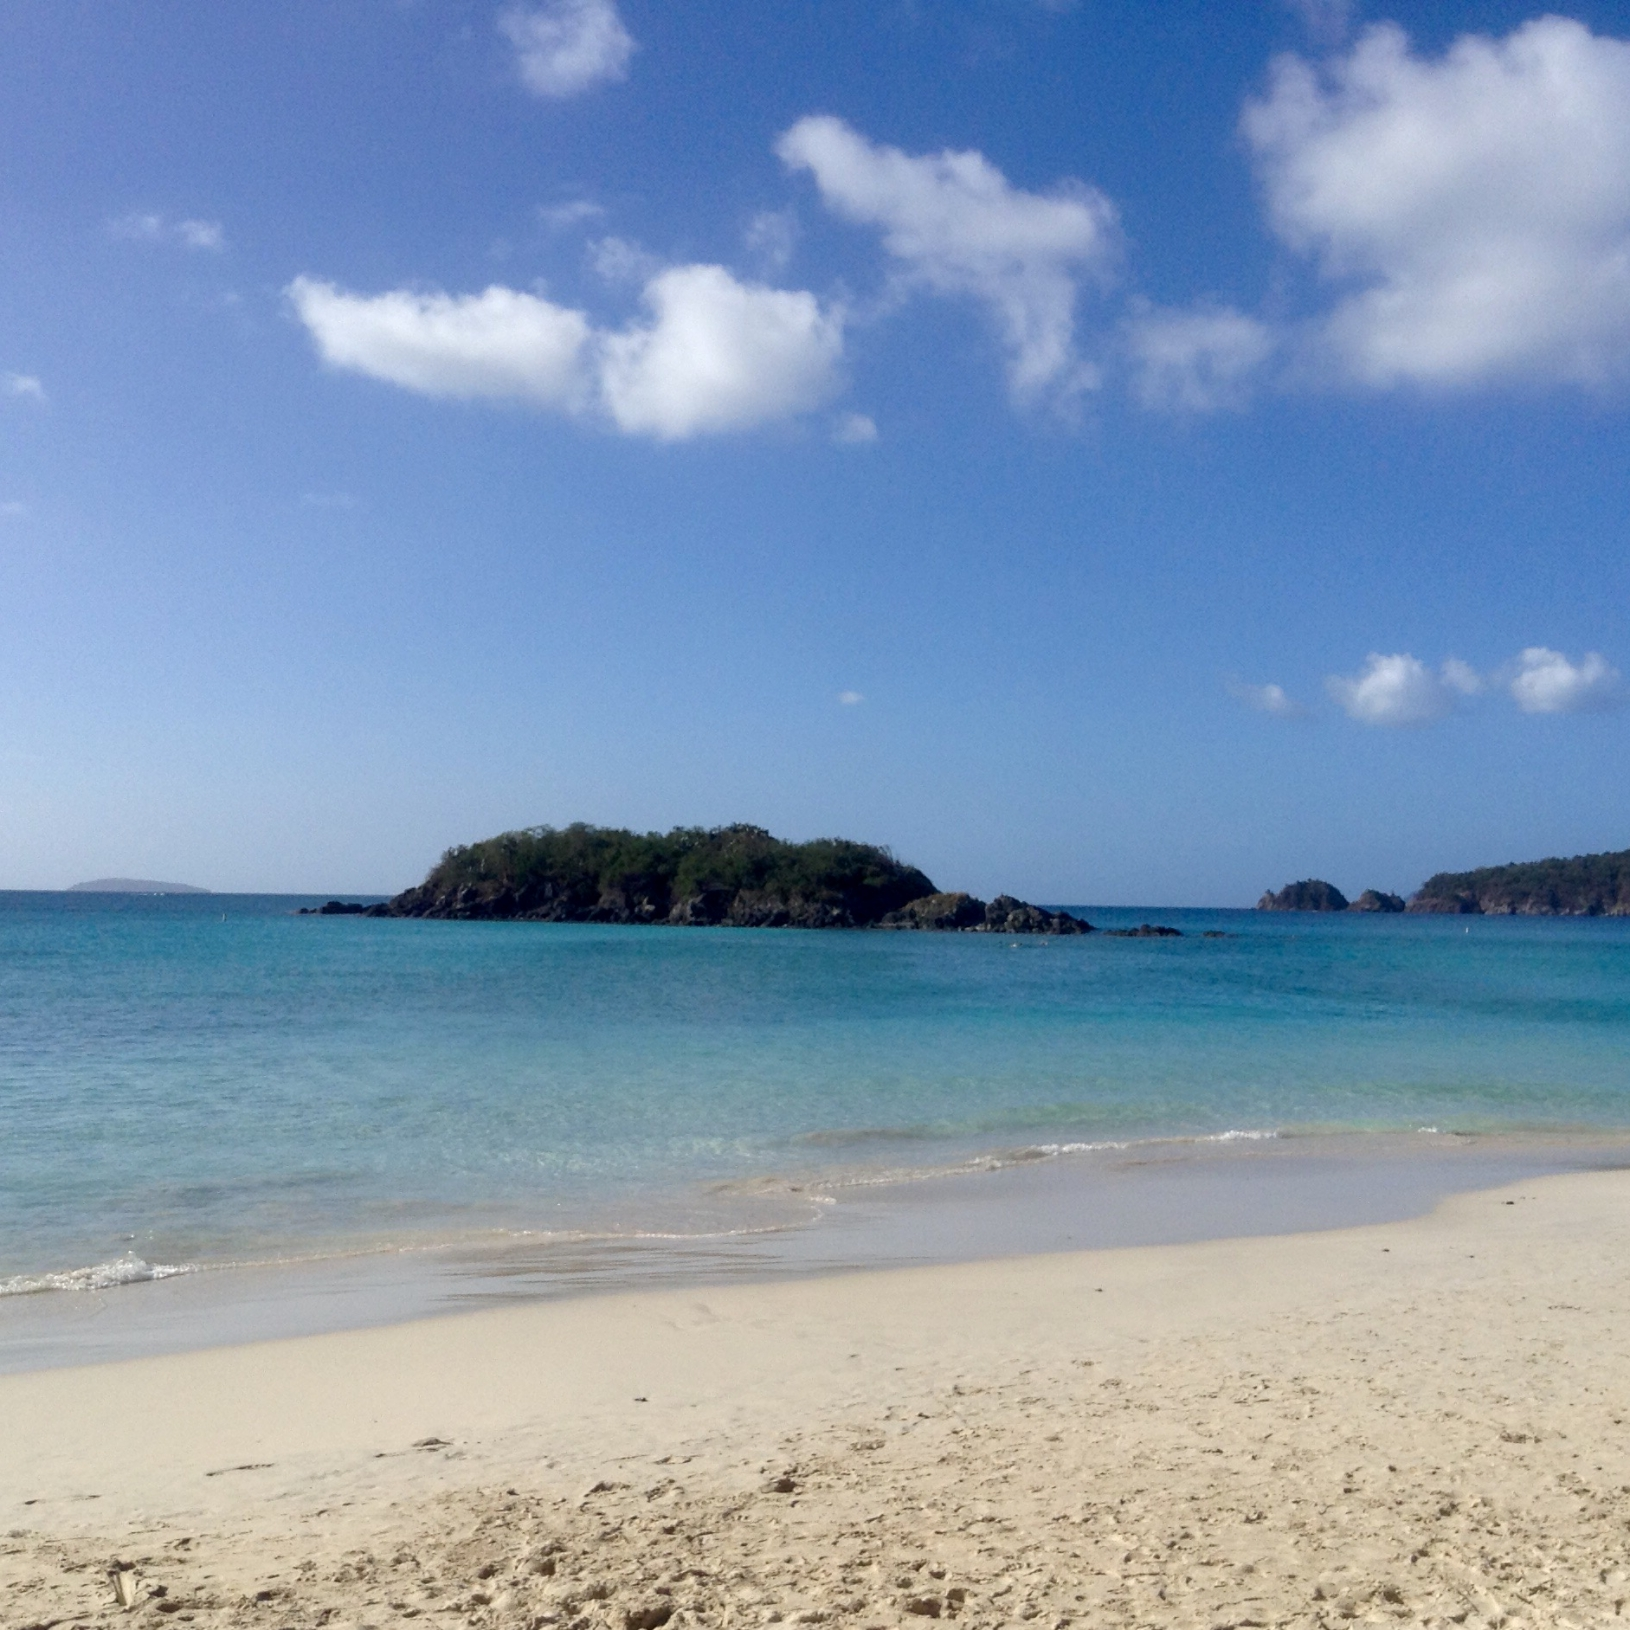 A view of Cinnamon Cay from Cinnamon Bay beach. The water is bright Aqua, the sky blue with a few little white clouds and the cay is craggy volcanic rock.